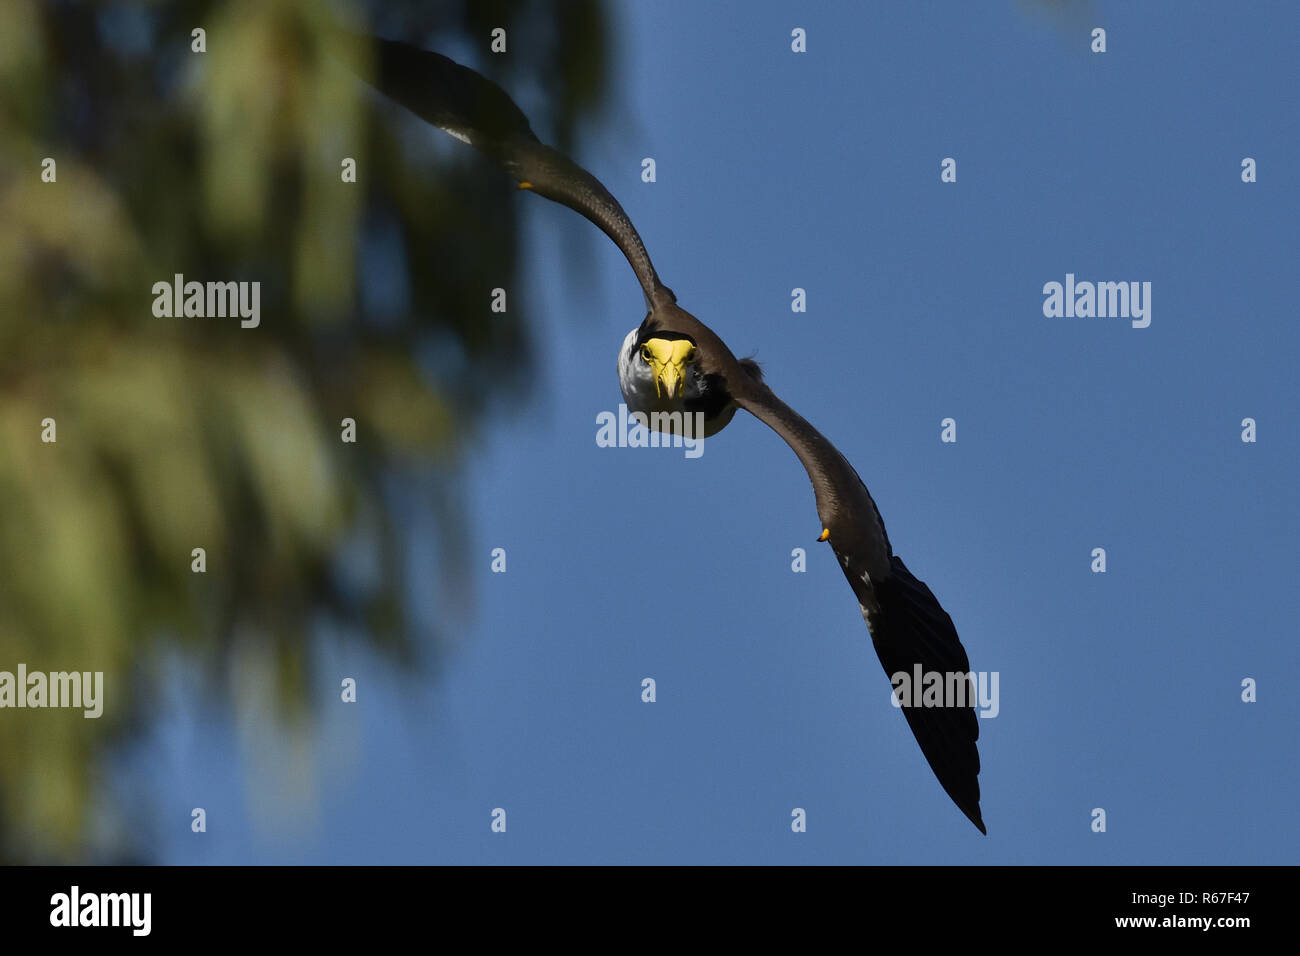 An Australian, Queensland Masked Lapwing ( Vanellus miles ) swooping down from behind a tree Stock Photo